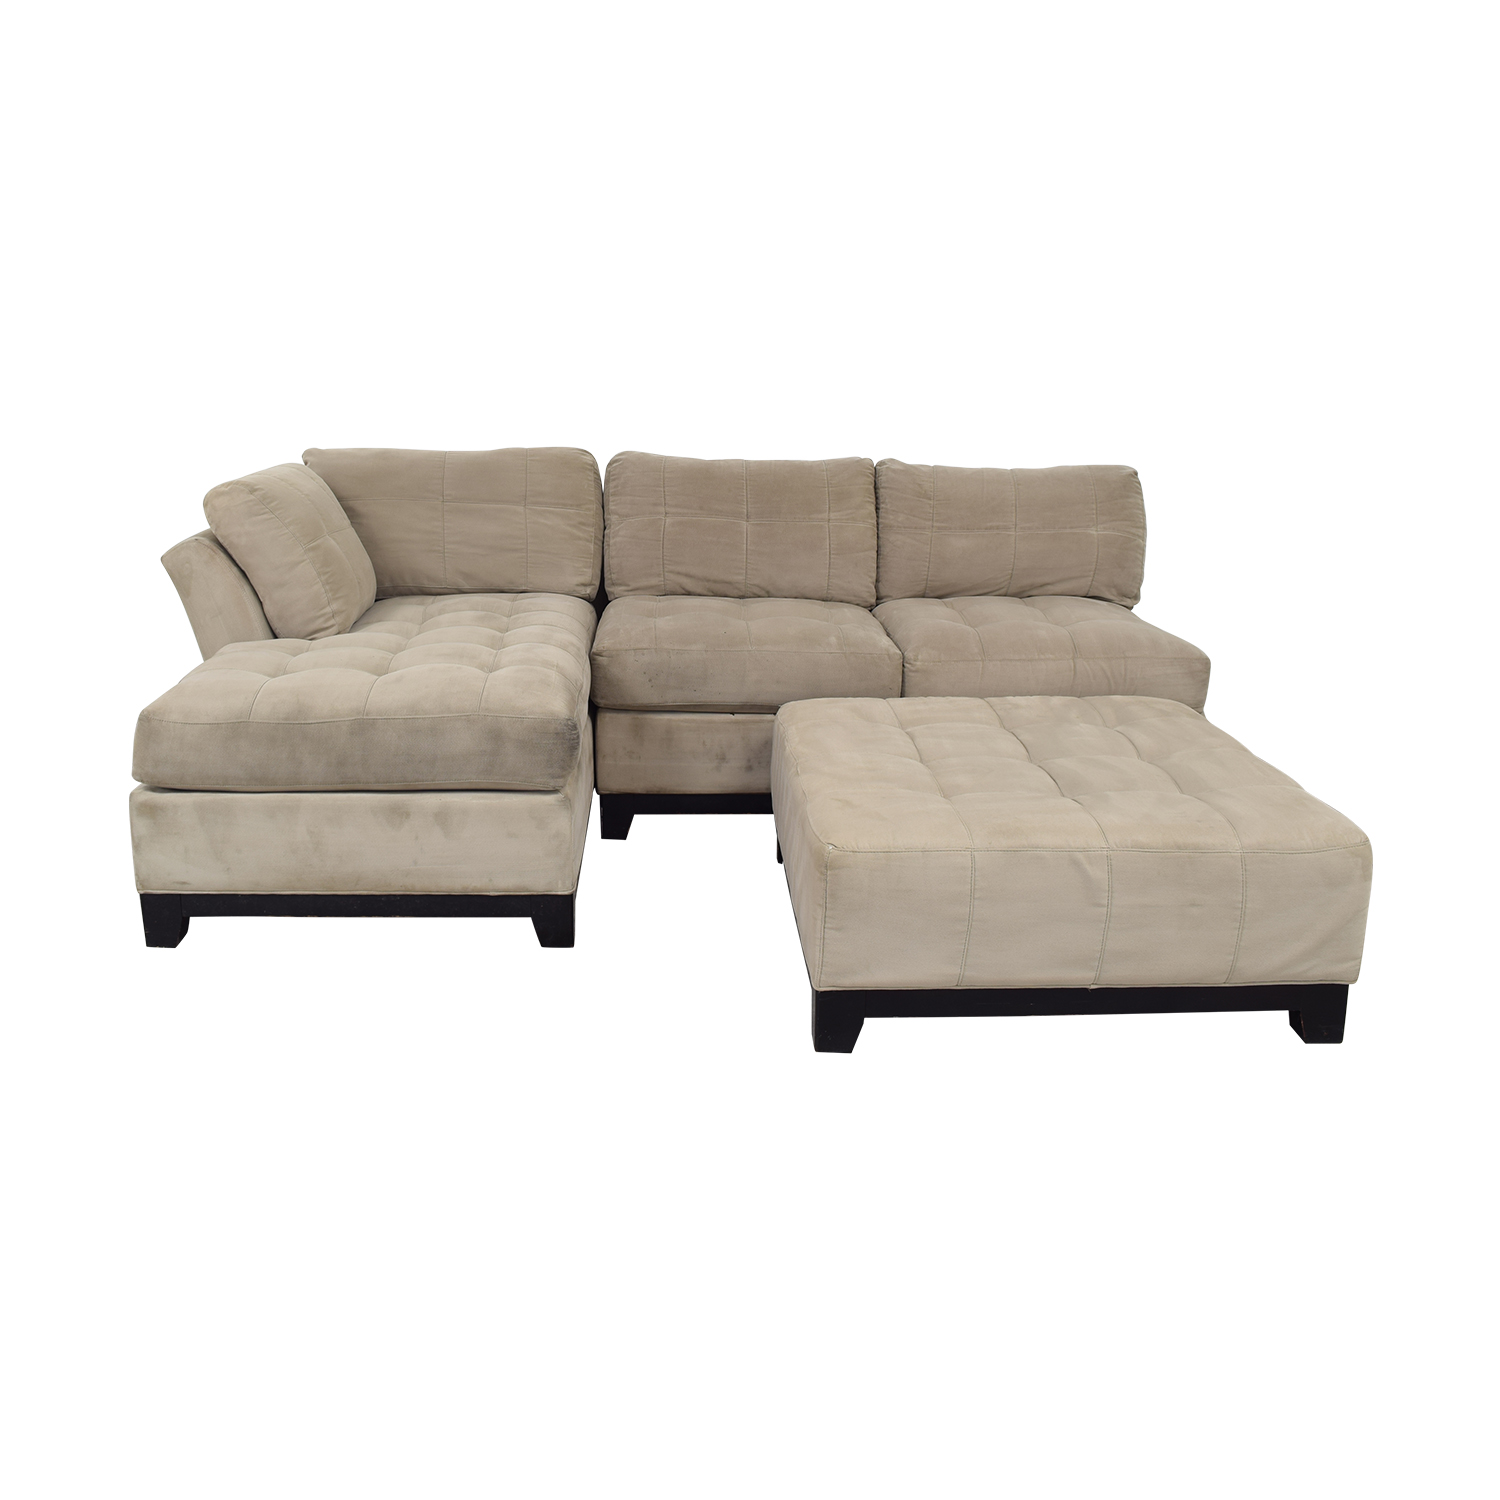 Cindy Crawford Home Cindy Crawford Home Microfiber Sectional with Ottoman Sectionals